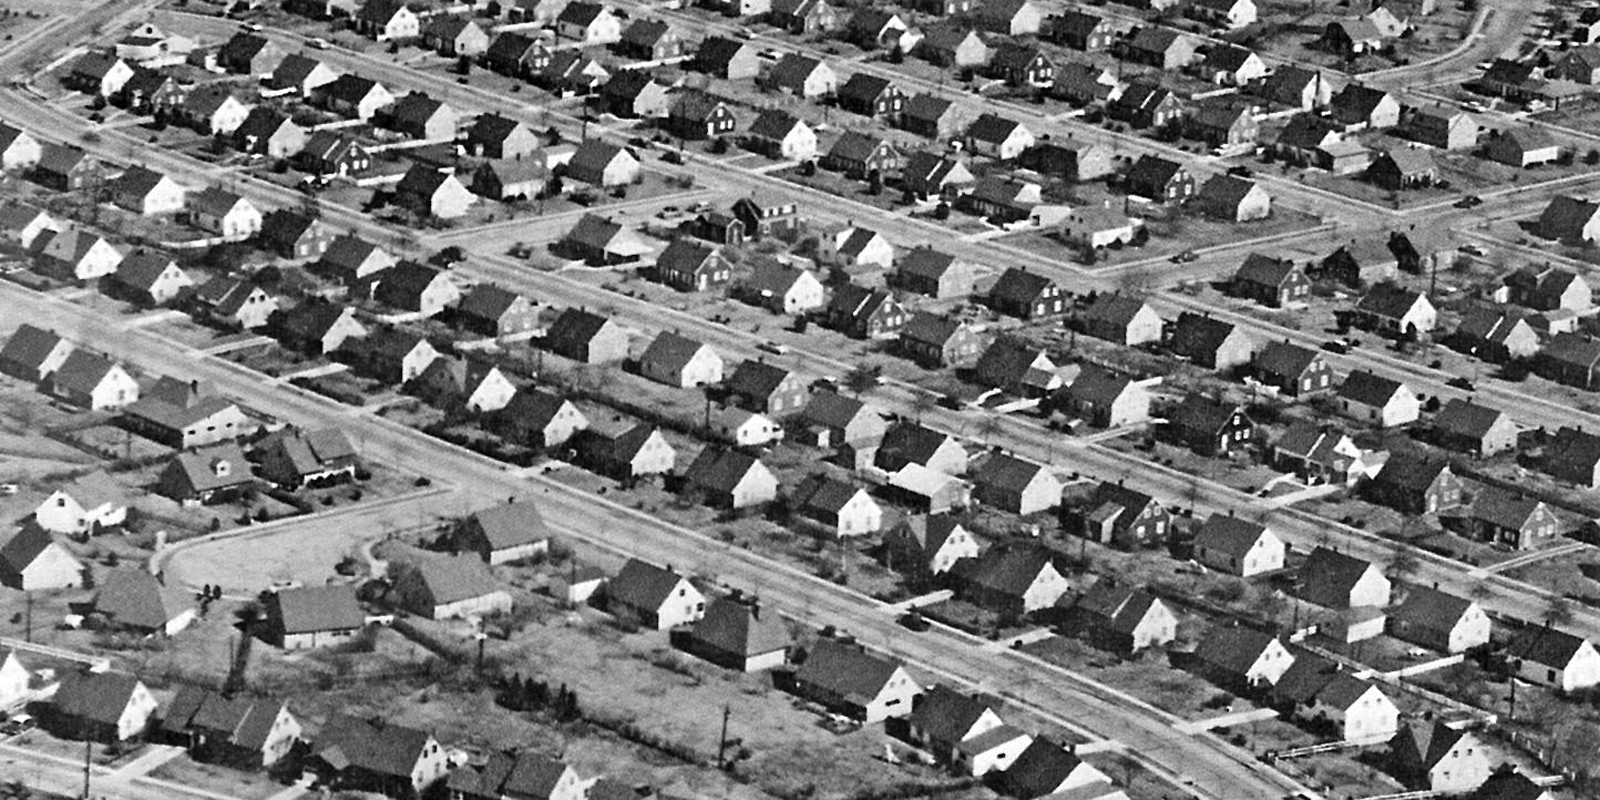 Levittown, early 1950s, via Flickr user markgregory.